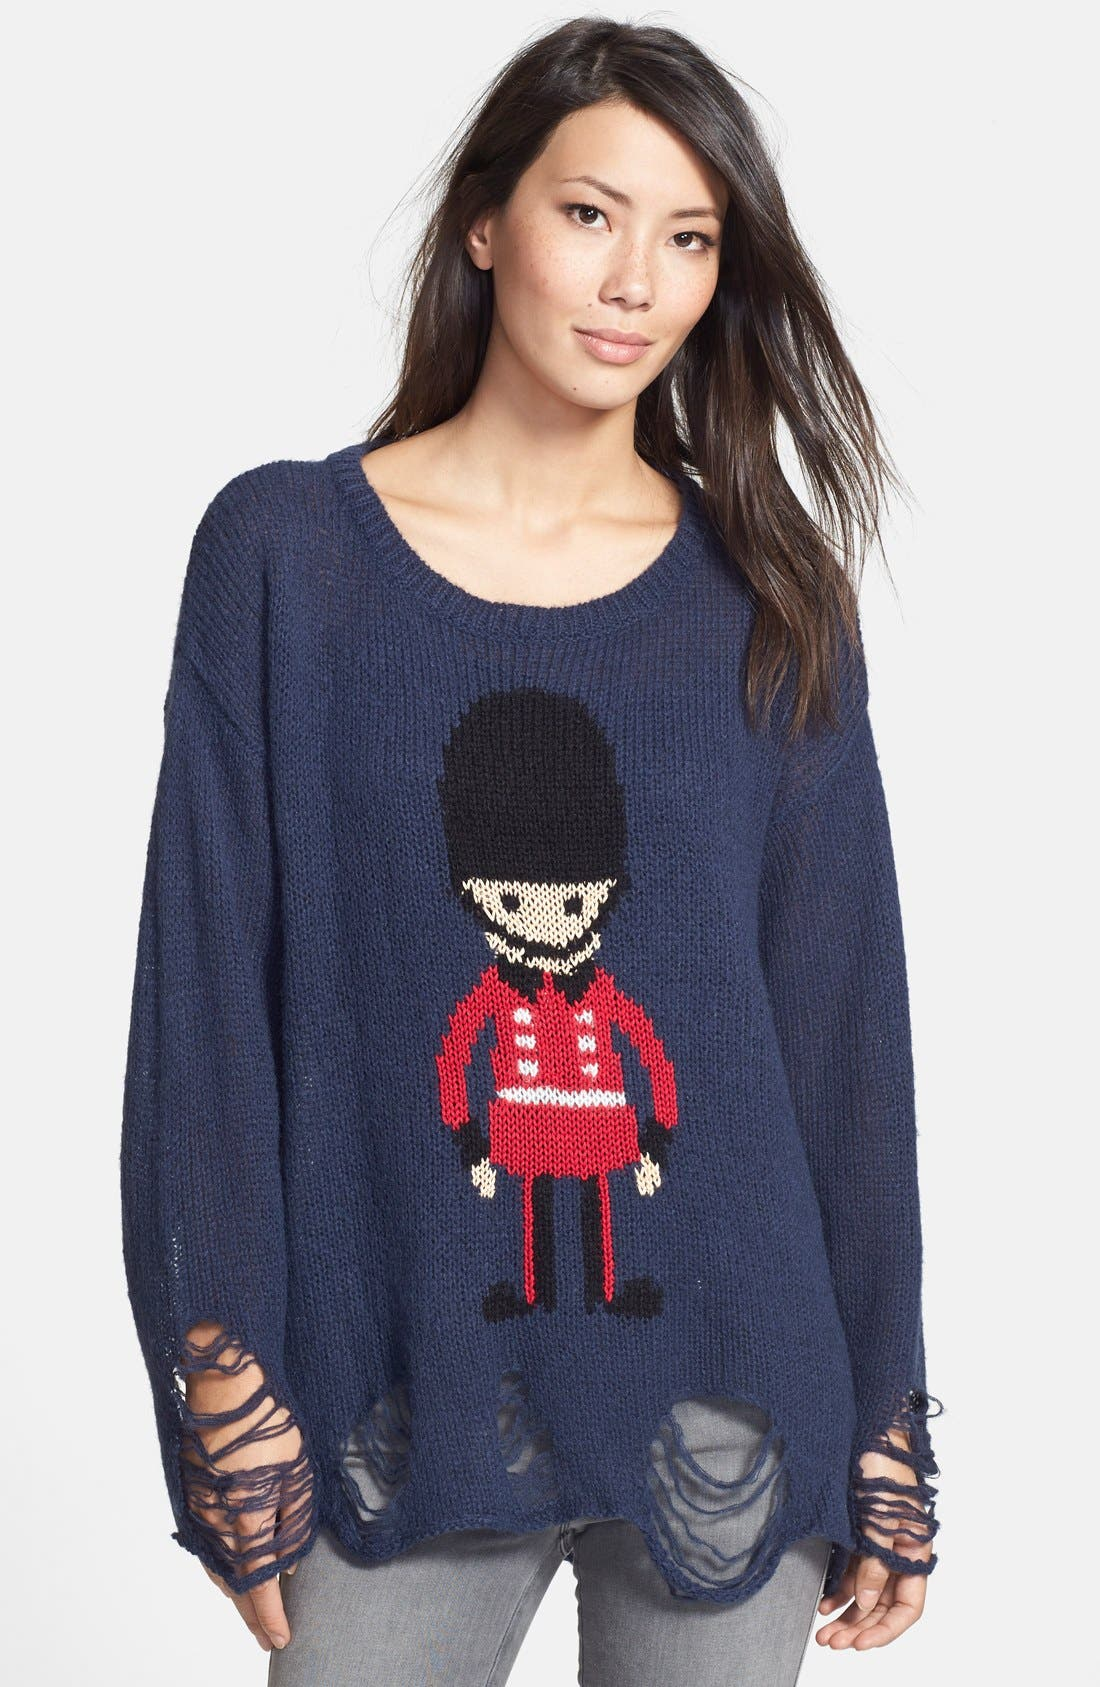 WILDFOX, Soldier Boy Sweater, Main thumbnail 1, color, 410